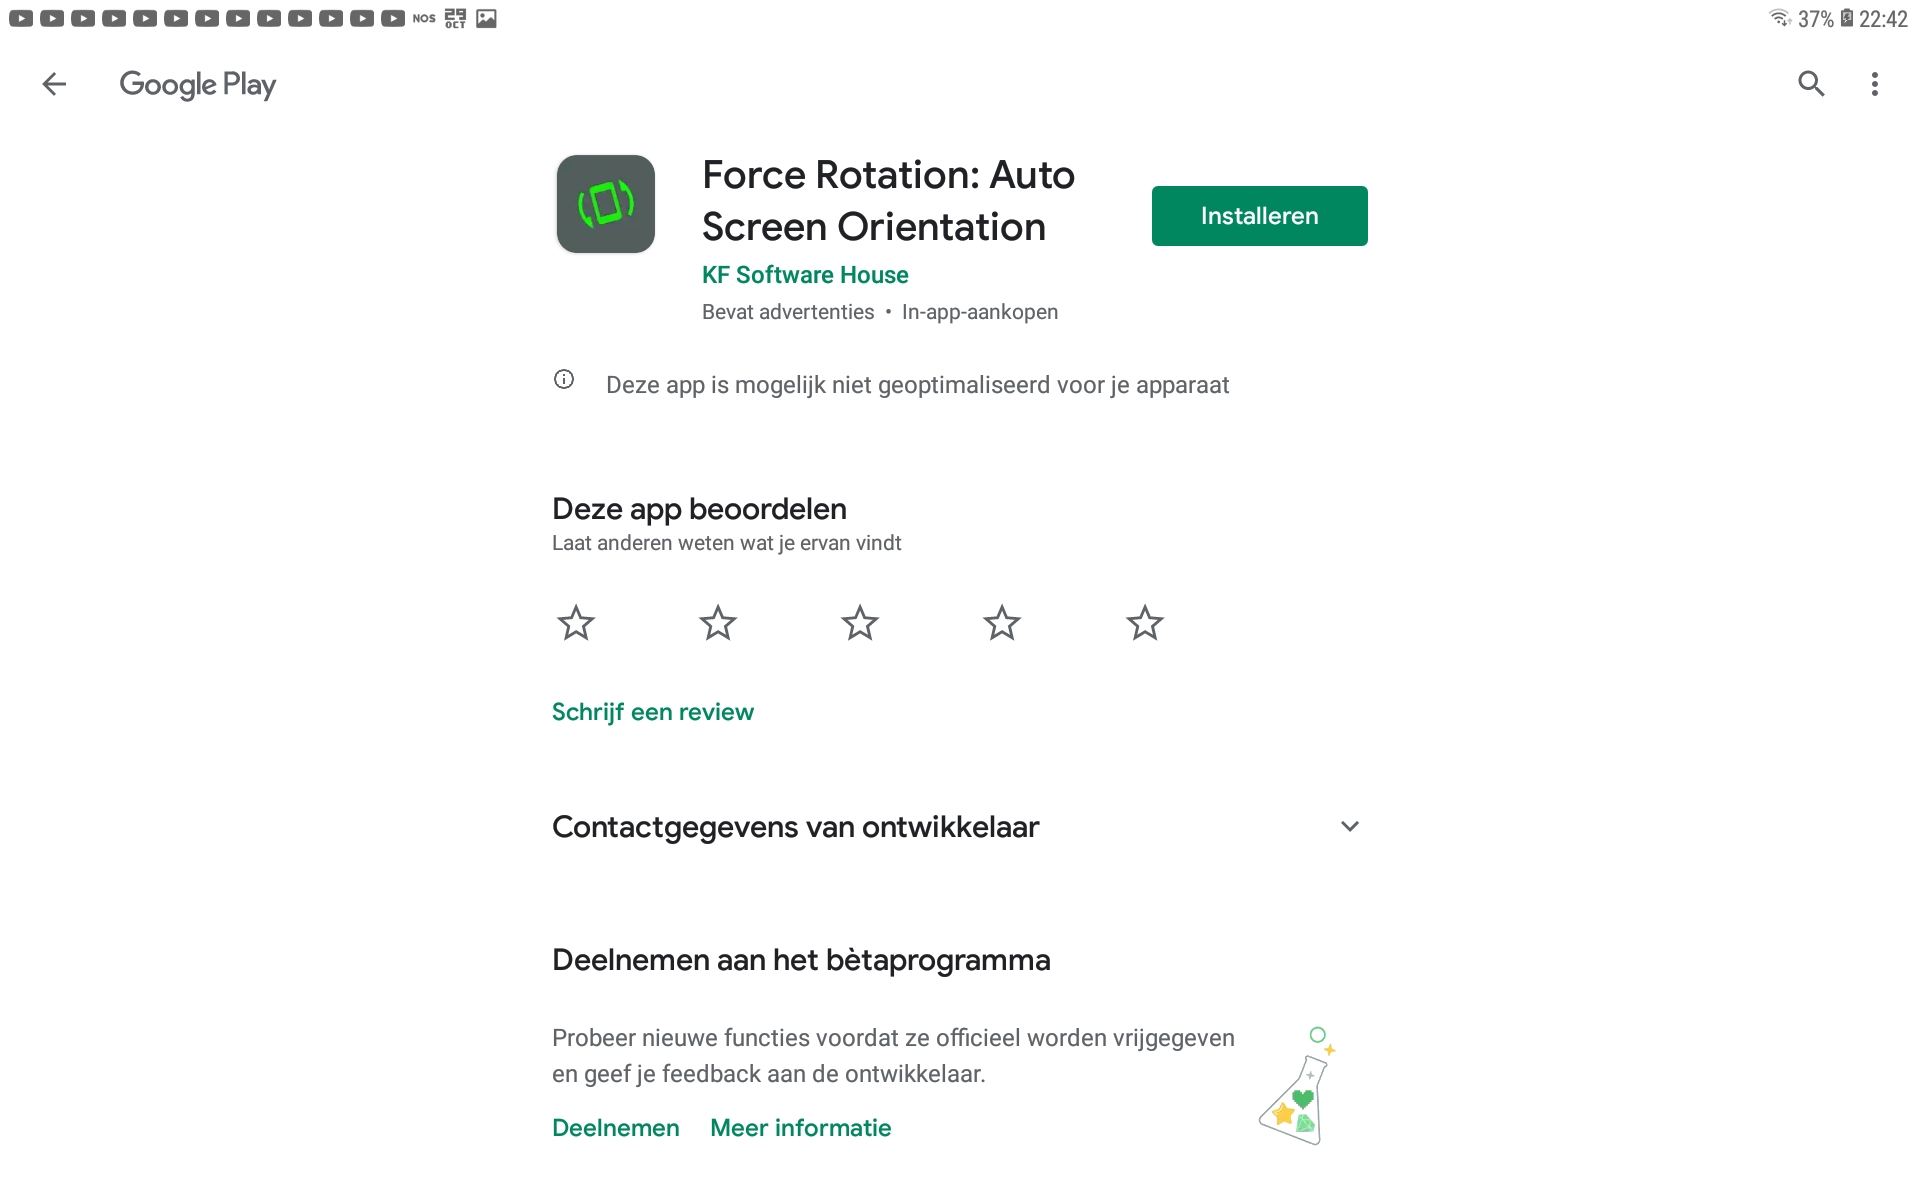 Google Play Store: Forece Rotation - Install button